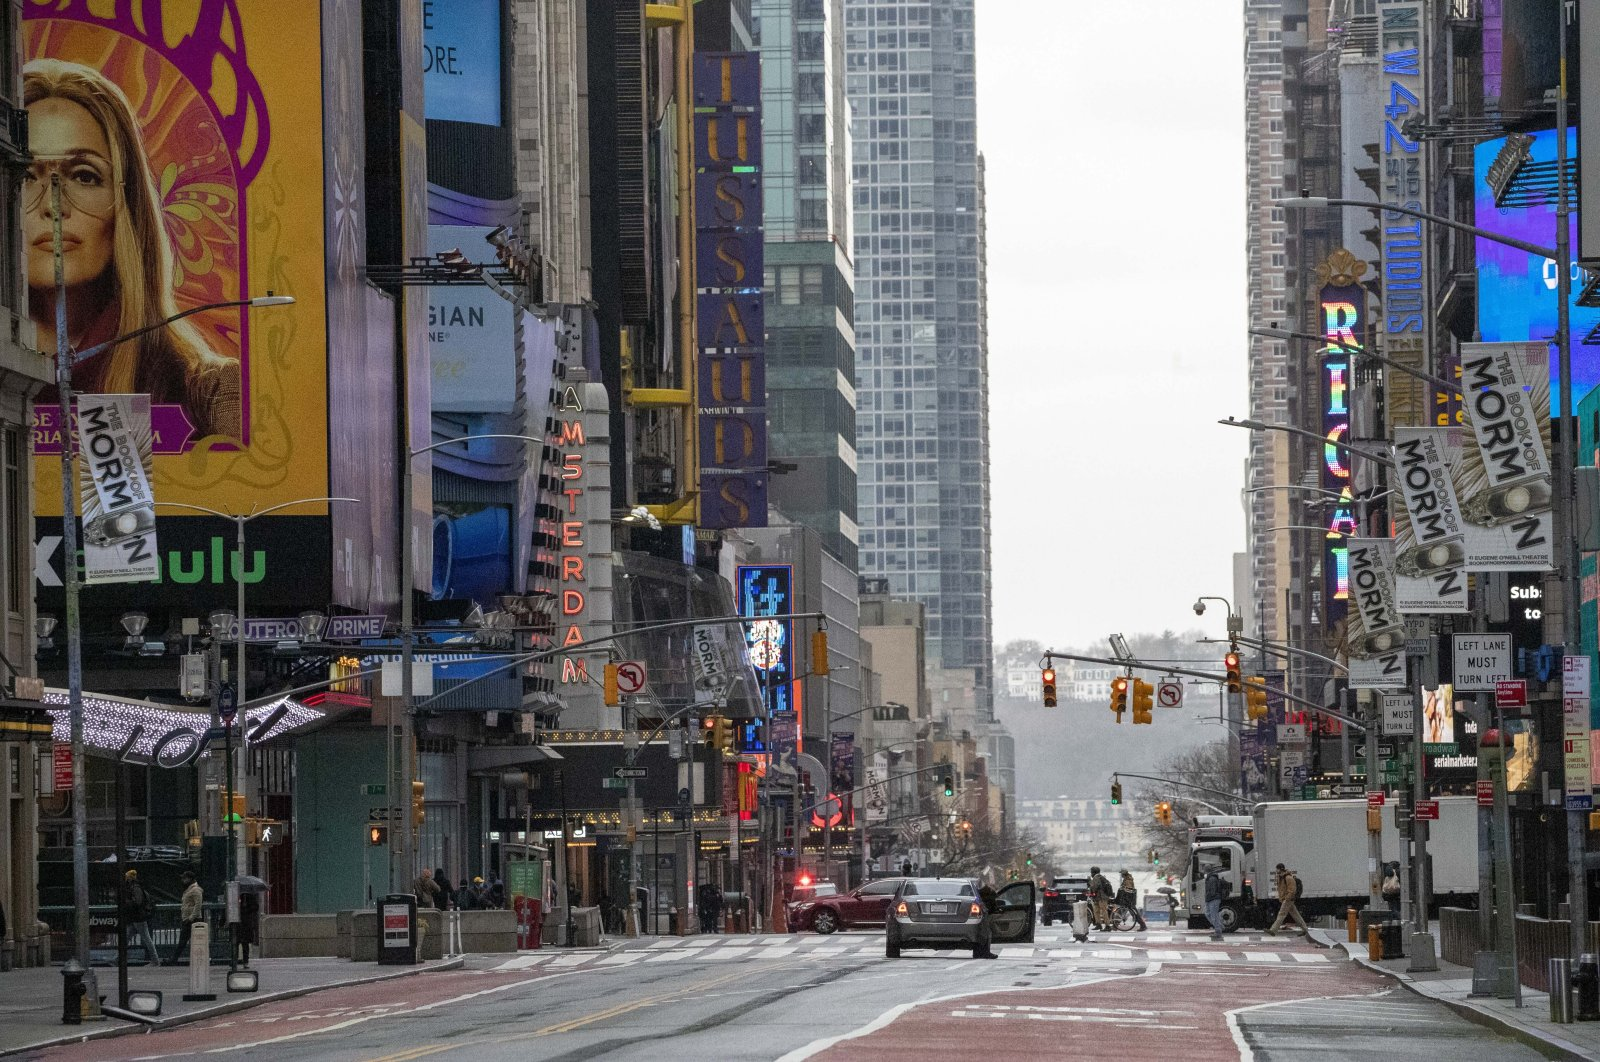 Light traffic is seen on 42nd St. in New York's Times Square, Wednesday, March 25, 2020. (AP Photo)